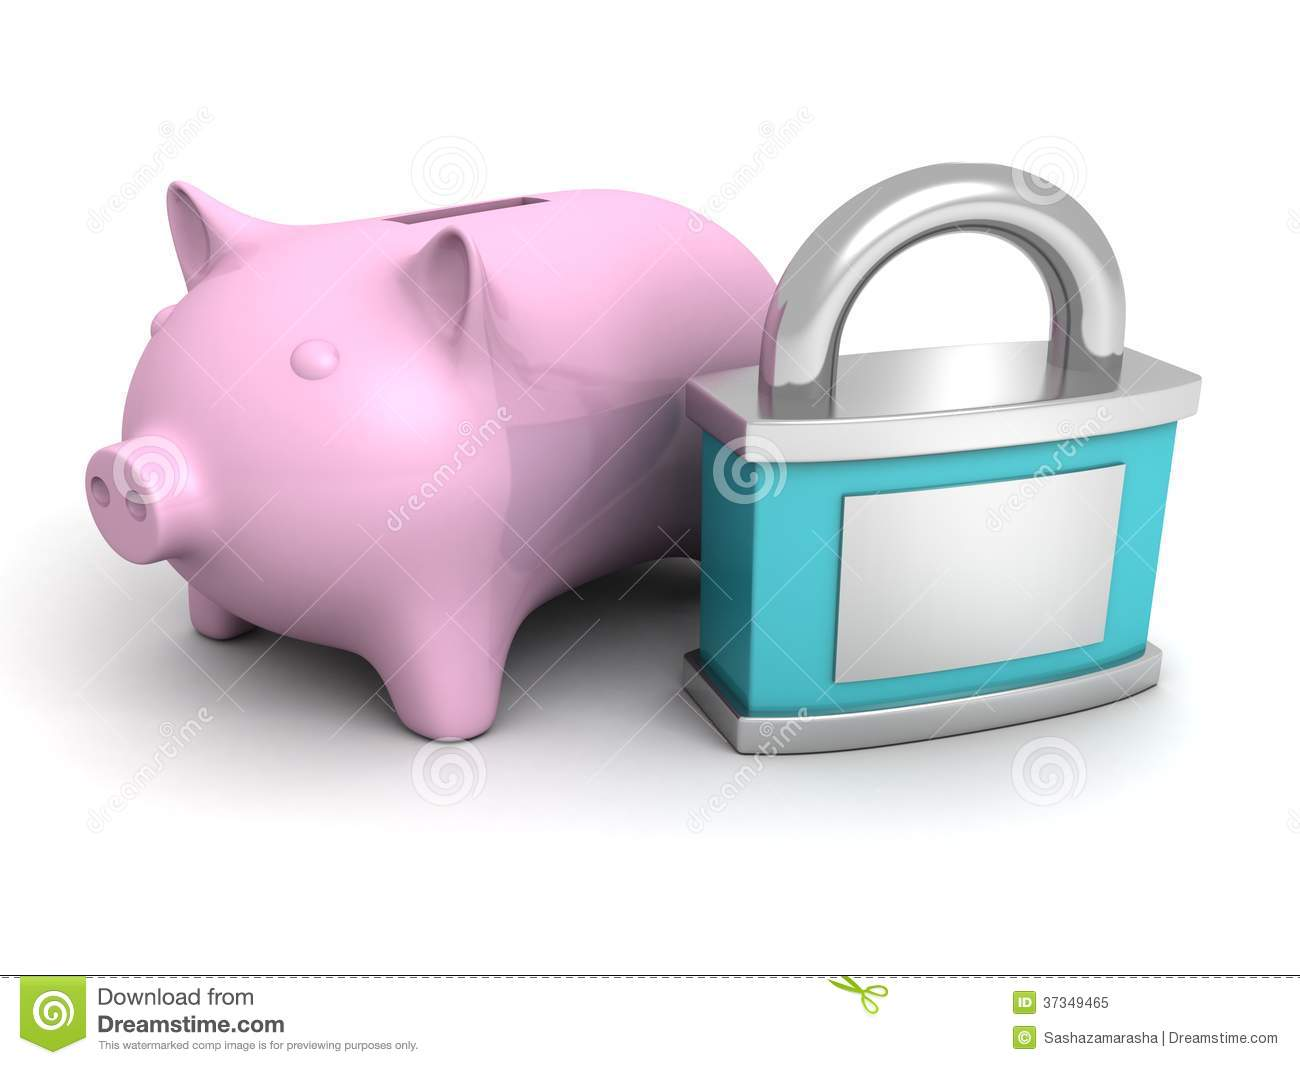 Blue safety padlock and pink piggy money bank